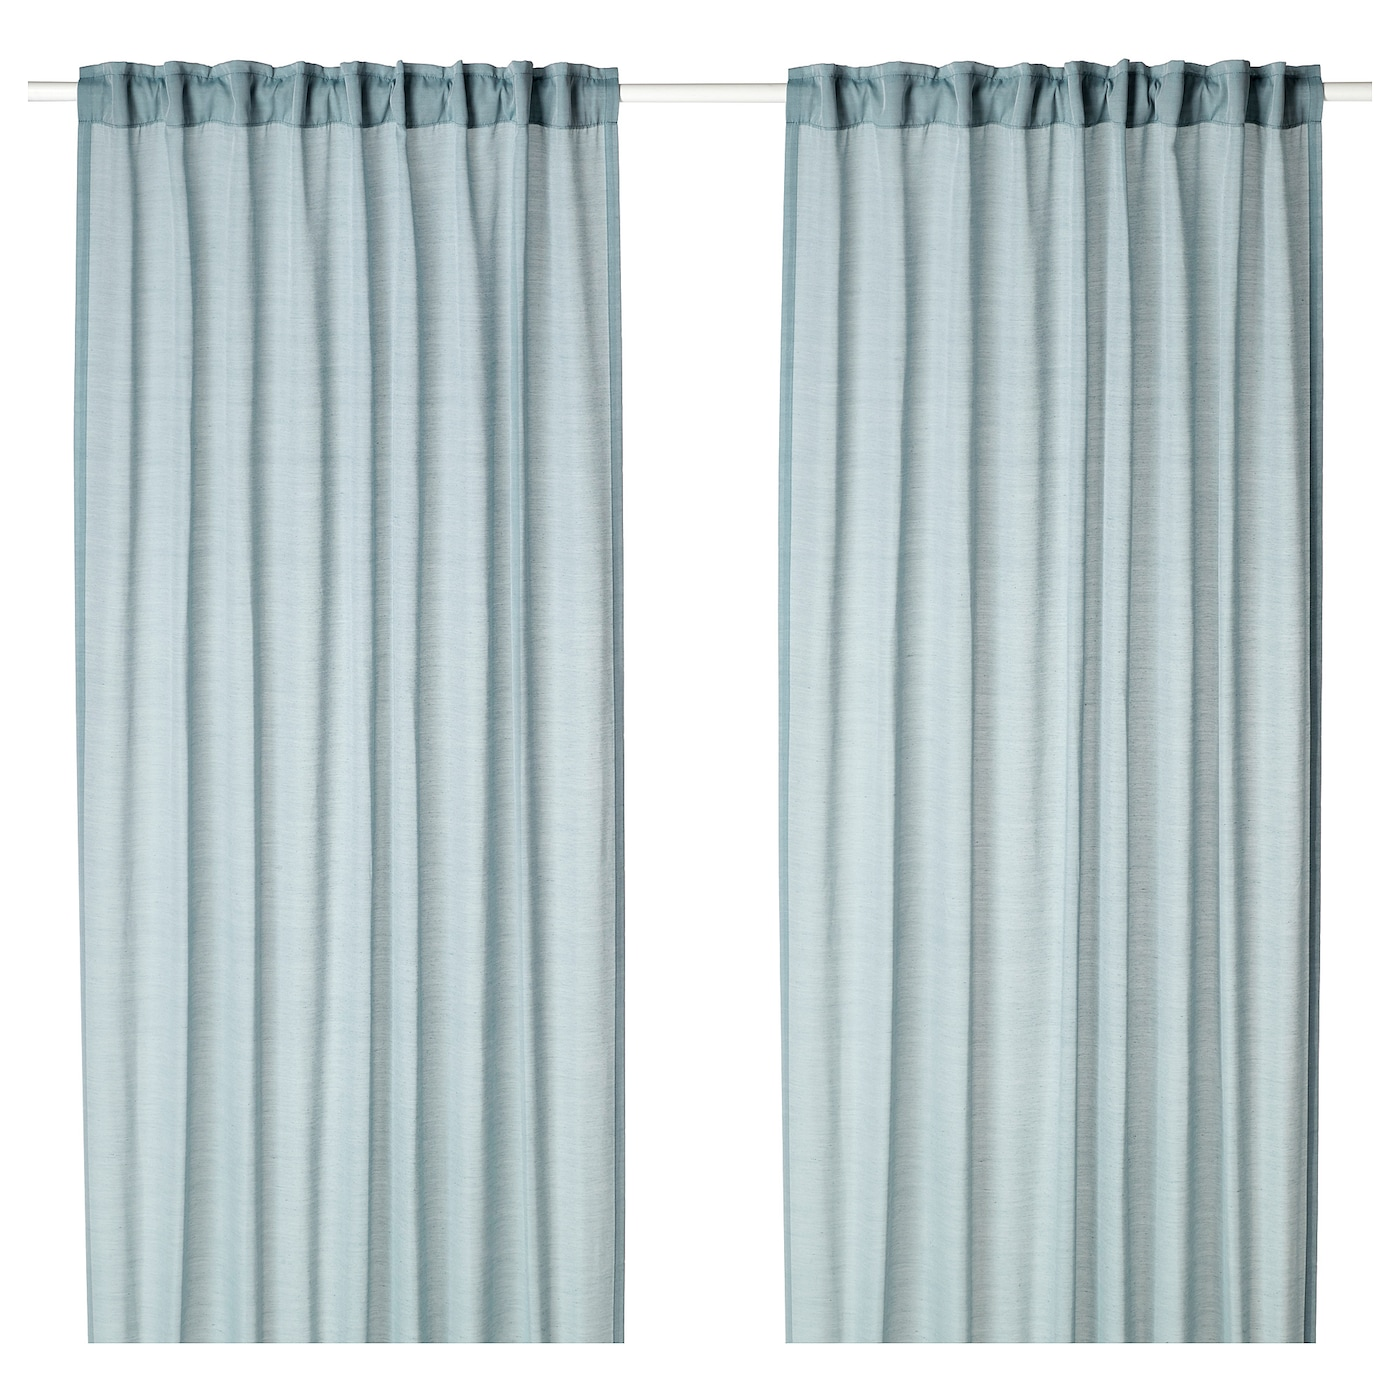 room blackout mod linen ivory darkening basketweave grom curtains default look pair curtain grommet